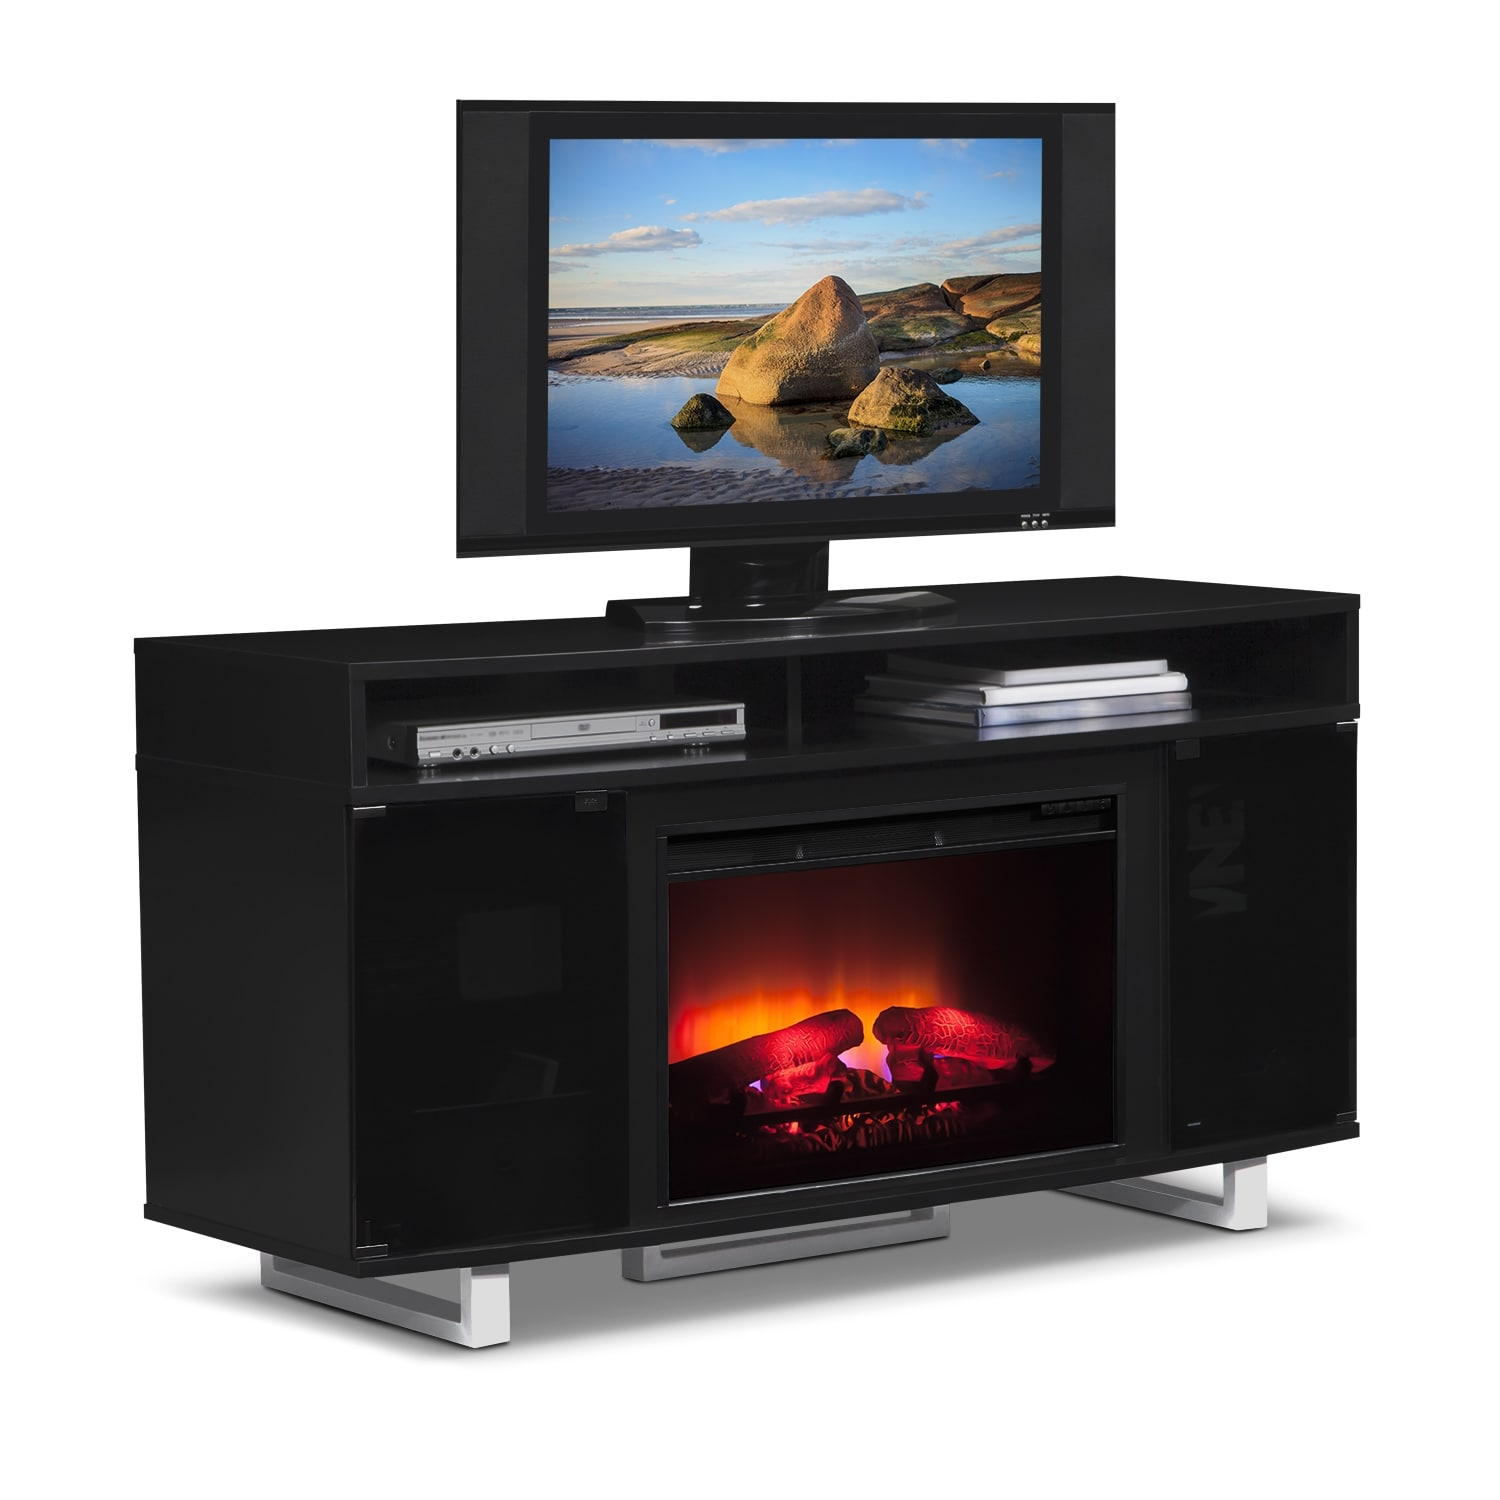 pacer 56 traditional fireplace tv stand black value city furniture. Black Bedroom Furniture Sets. Home Design Ideas